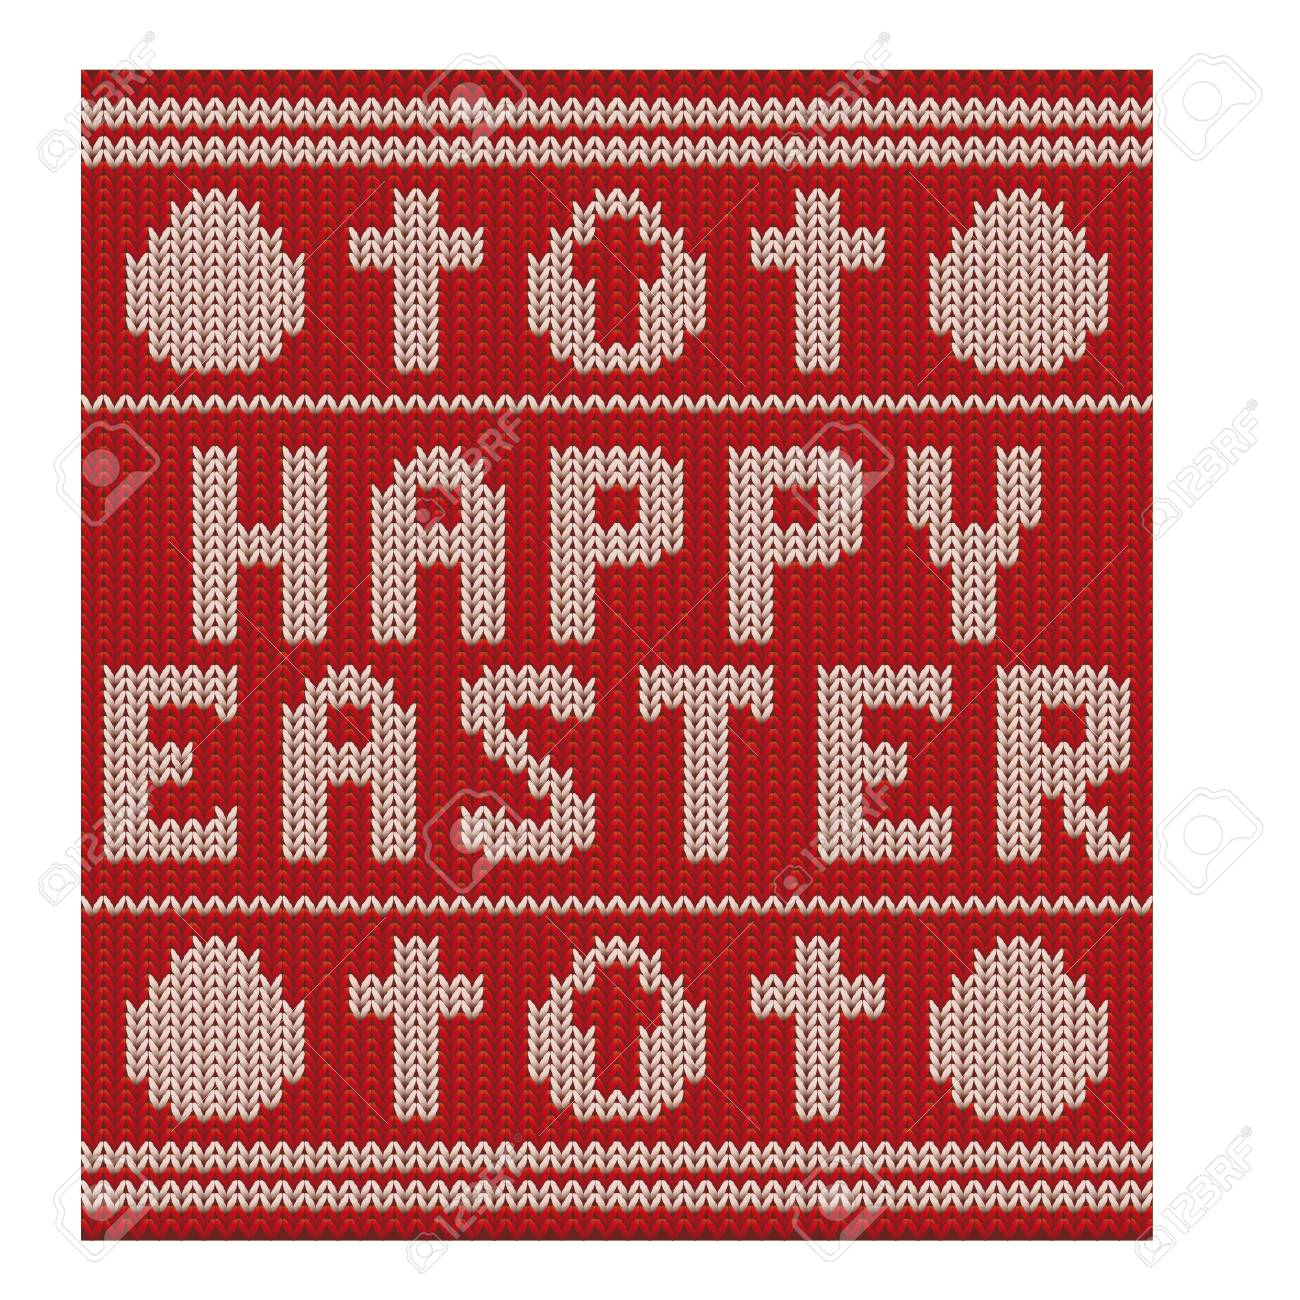 Happy Easter Knitting Pattern With Cross And Egg, Vector ...